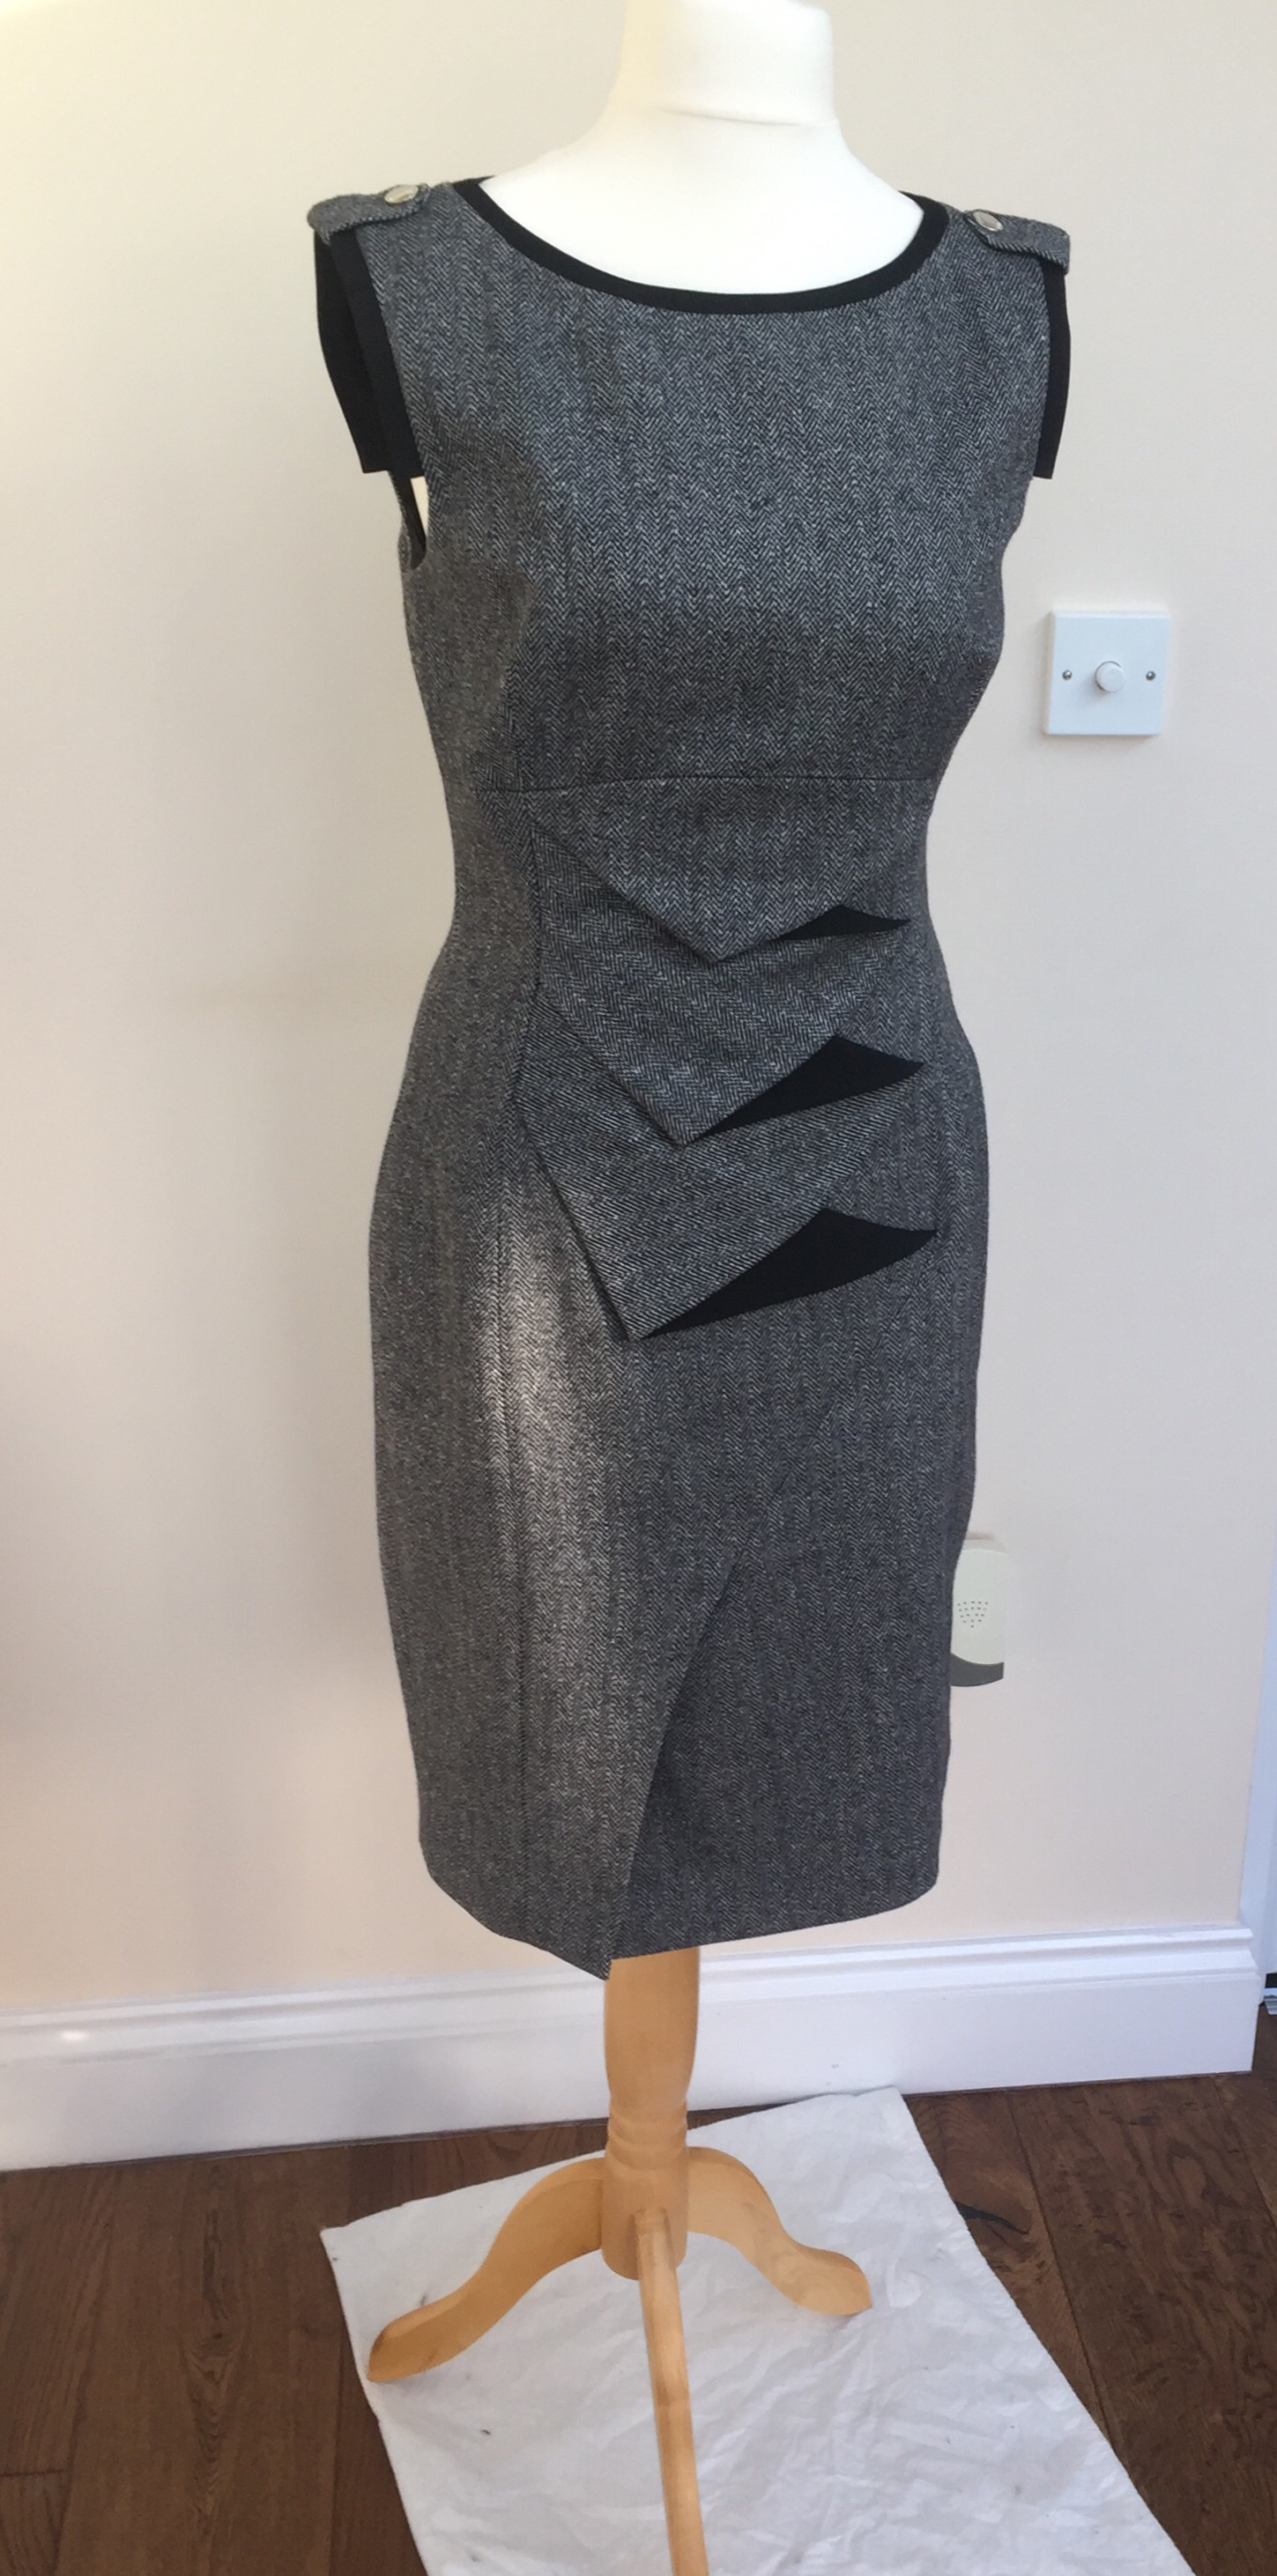 Buy Used Designer Clothes | Designer Clothes Second Hand Women S Clothing Buy And Sell Preloved